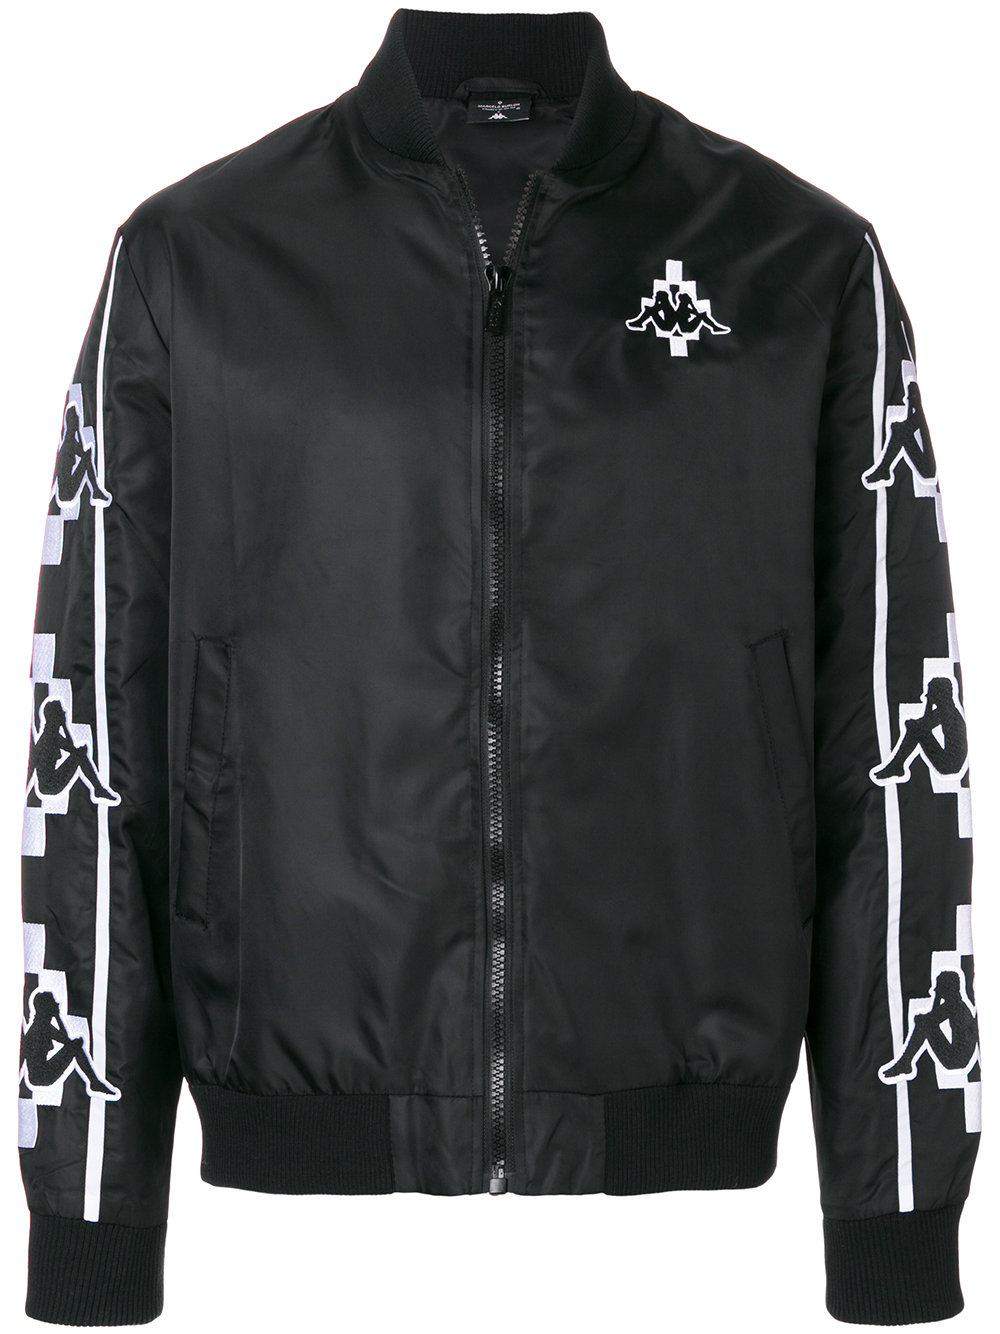 Marcelo Burlon Man KAPPA TAPE BOMBER BLACK WHITE